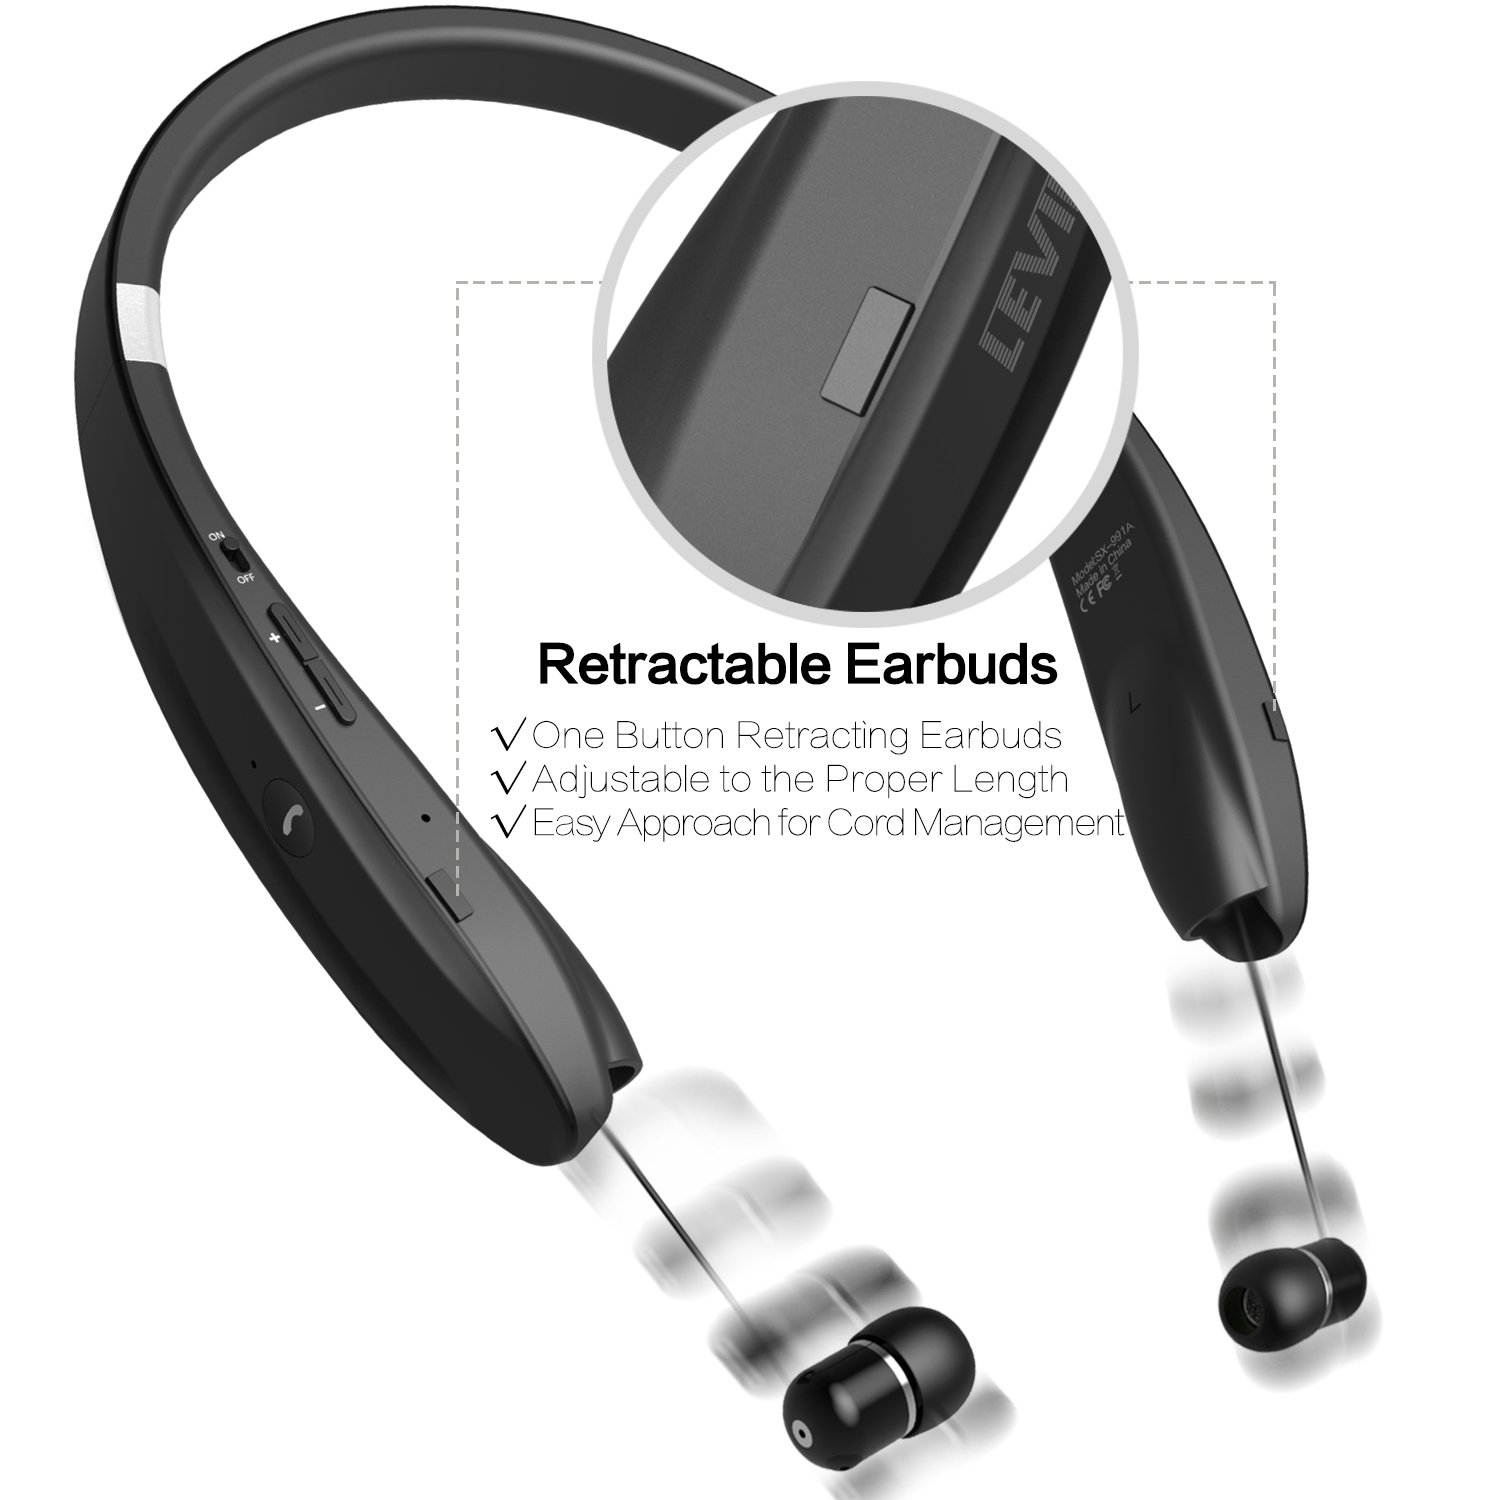 Bluetooth Headset Stereo – Upgraded Bluetooth 4.1 Wireless Headphone with Foldable Neckband Design Retractable Earbuds Compatible for All Cellphones